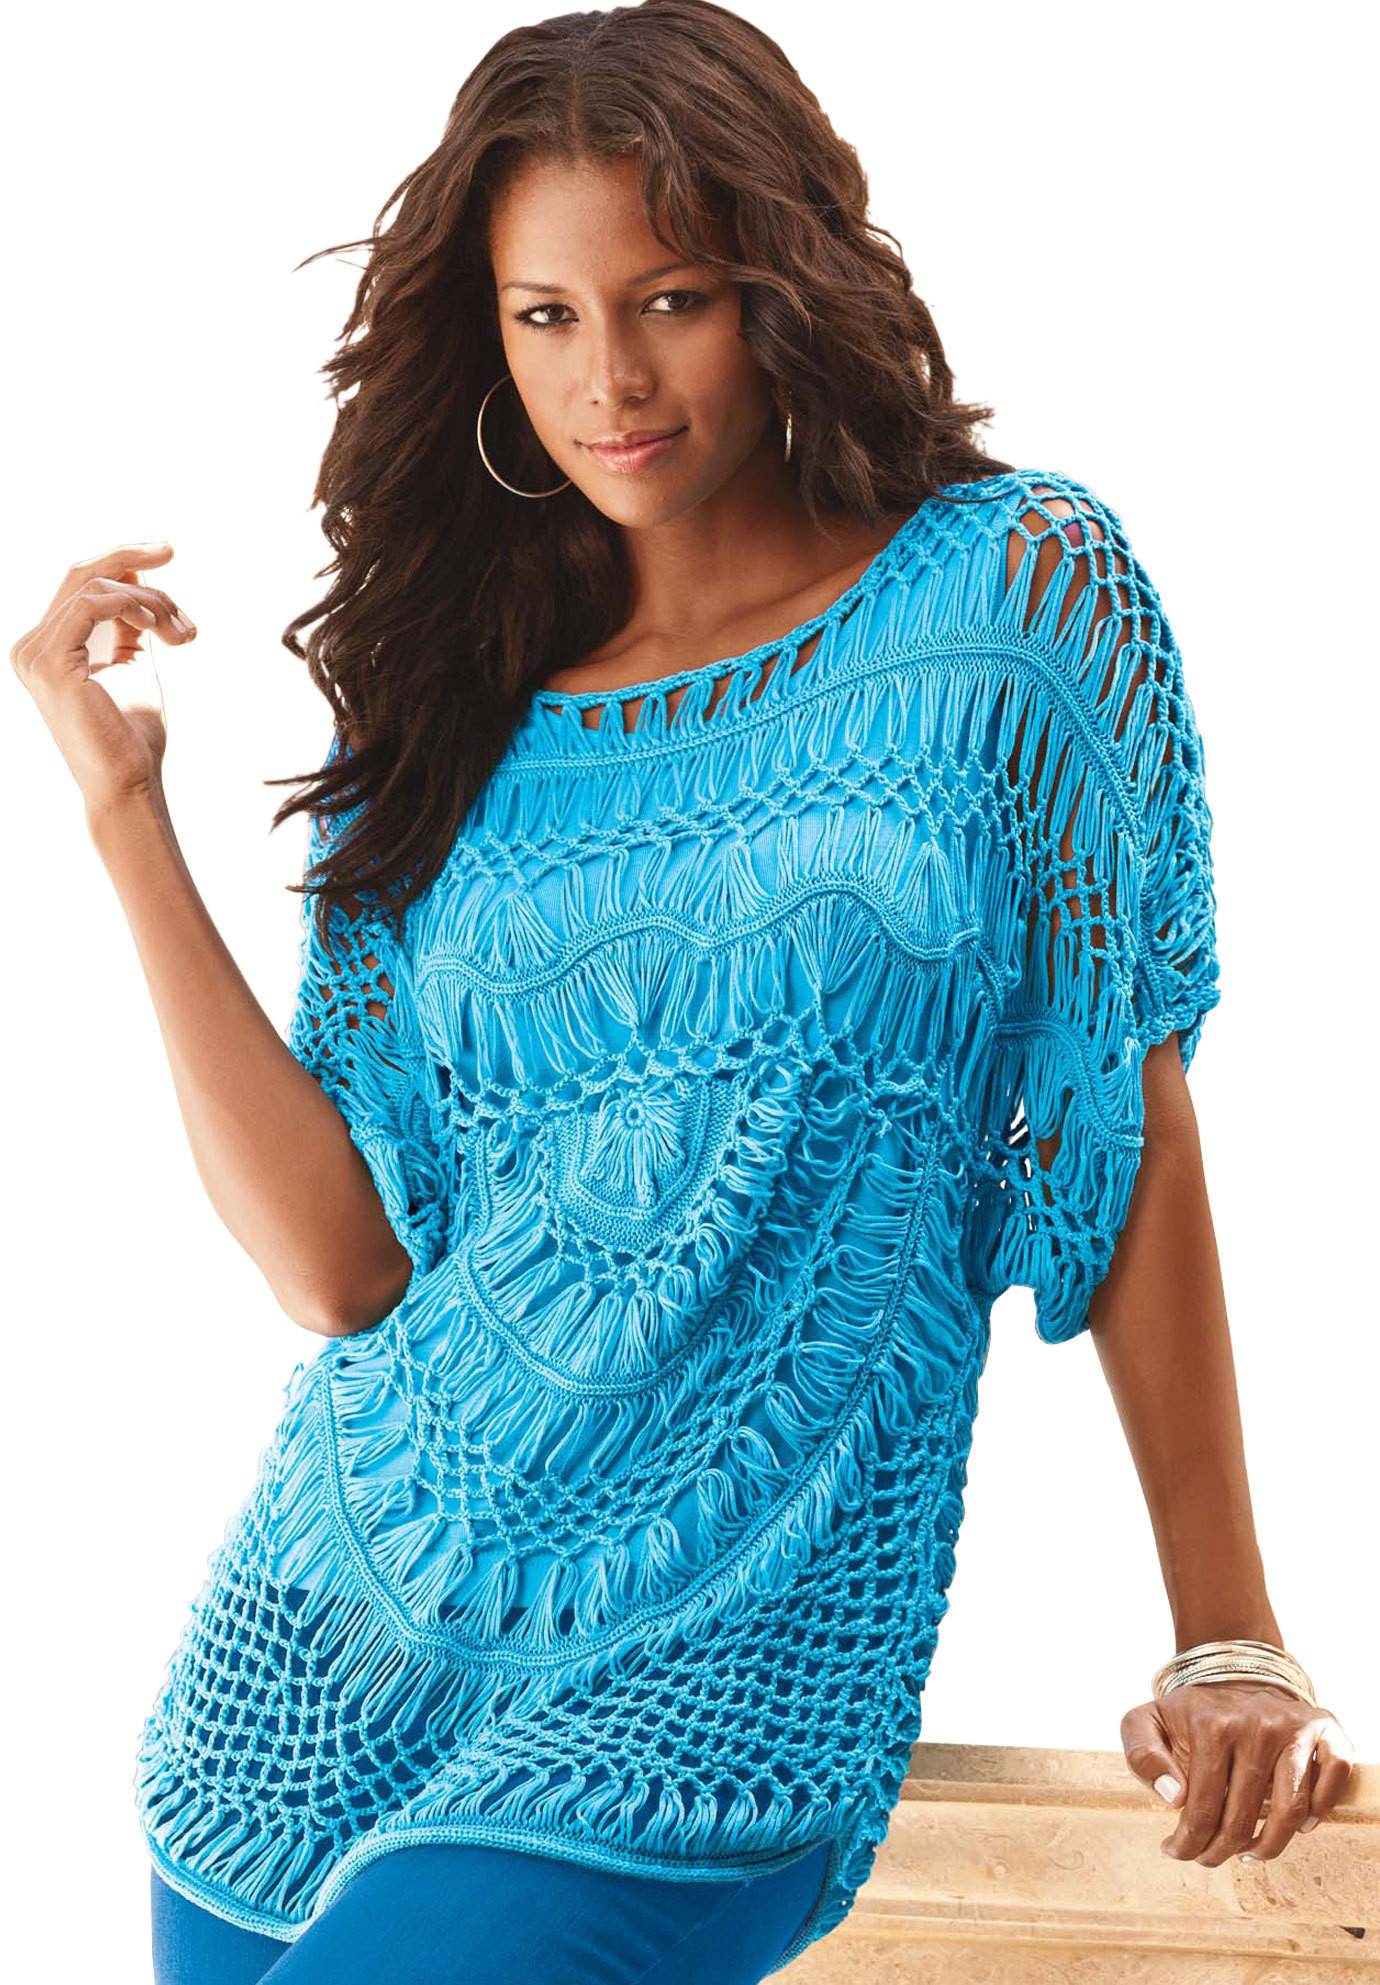 Awesome Crochet Lace top Plus Size Crochet and Knit Crochet tops Of Superb 50 Photos Crochet tops